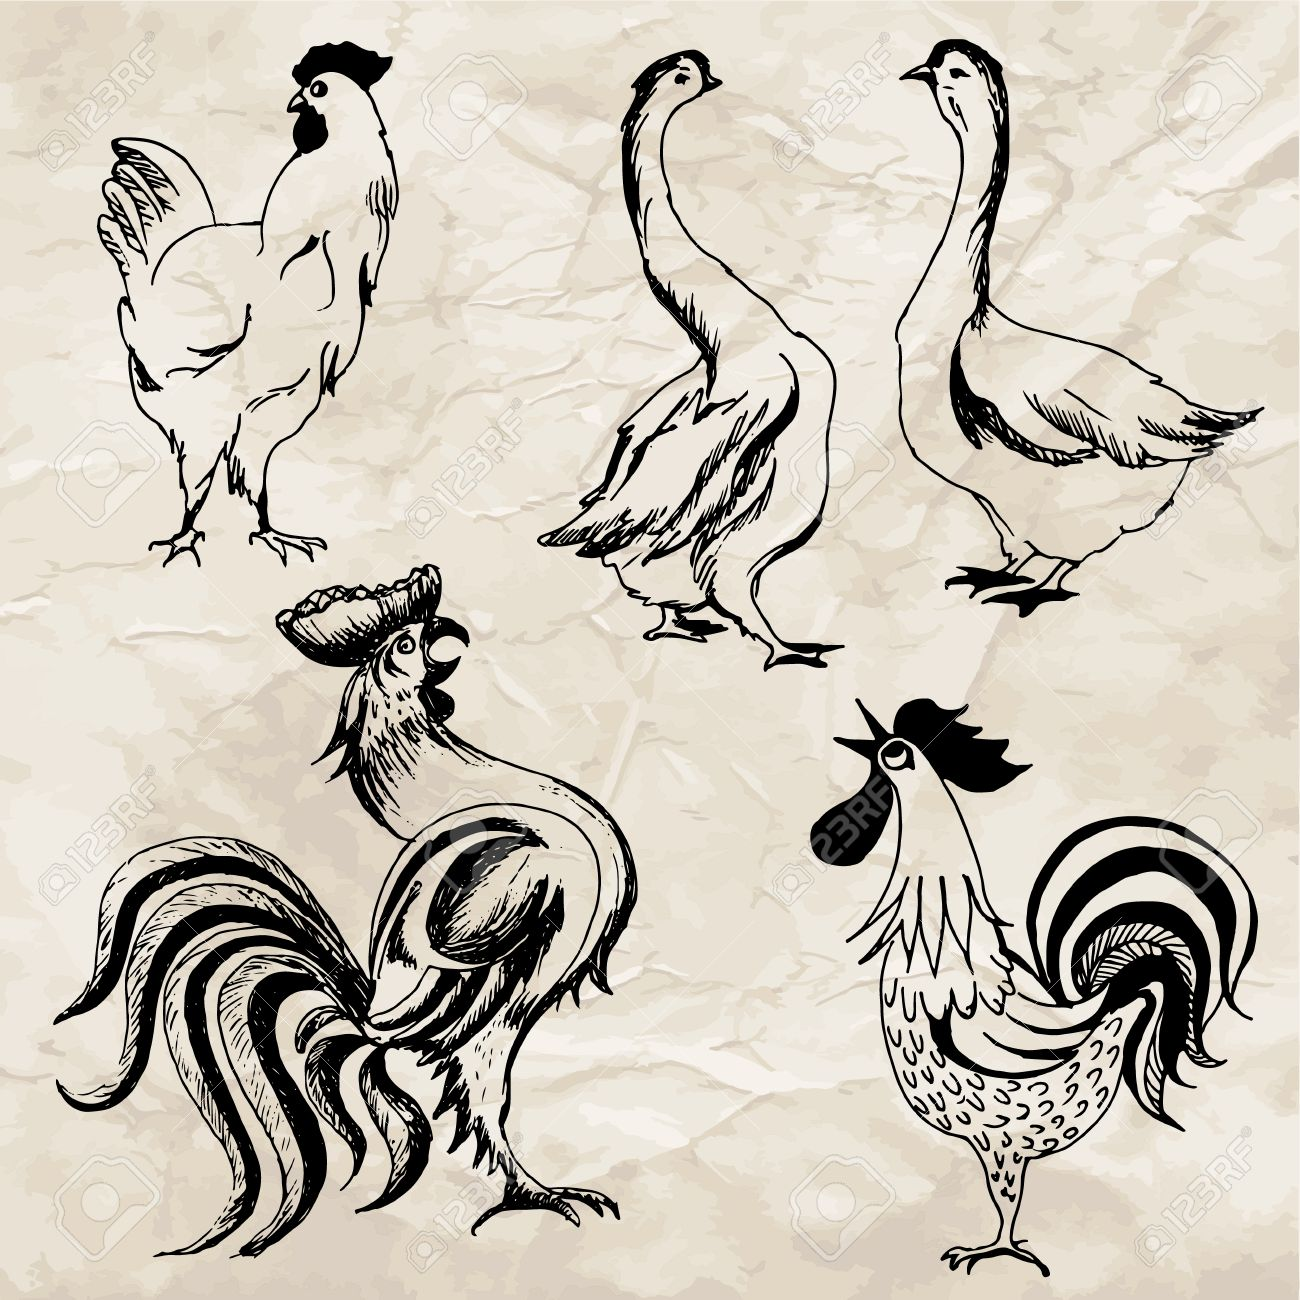 1300x1300 Hand Drawn Illustrations Of Birds. Drawings Of Rooster, Goose